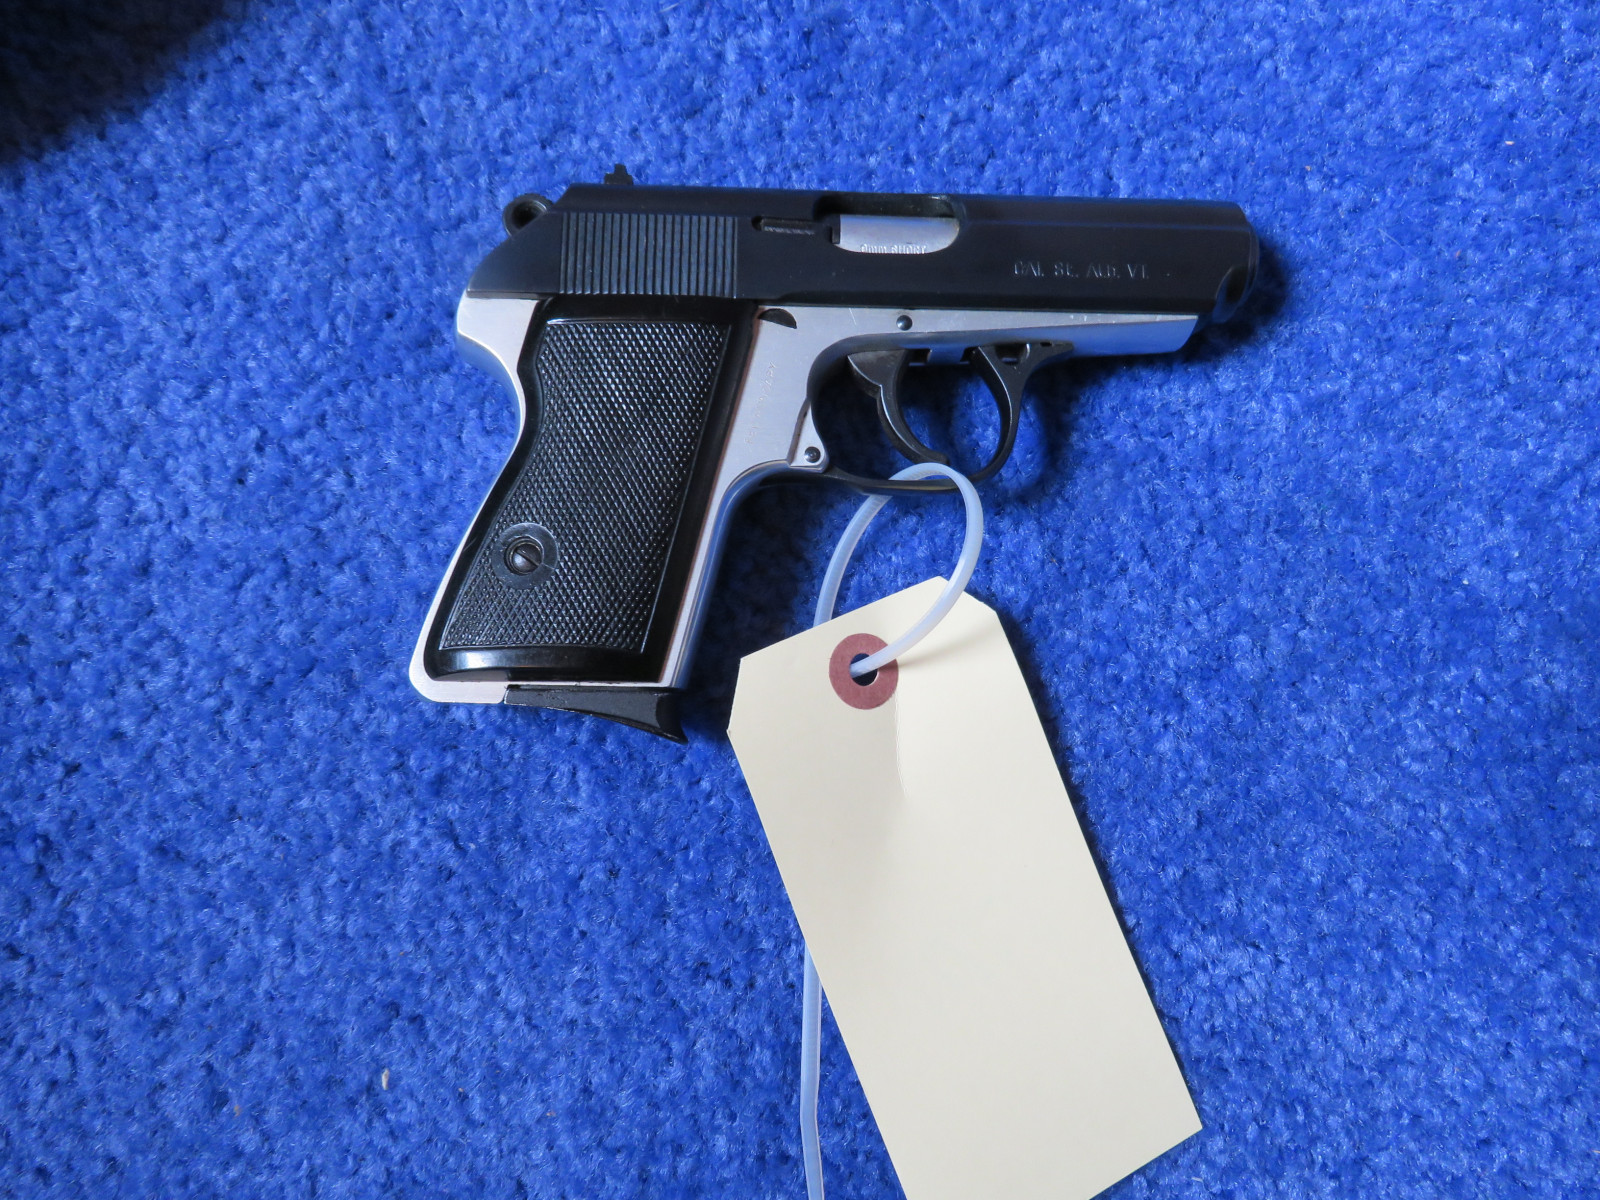 HFEG 9mm Handgun - Image 3